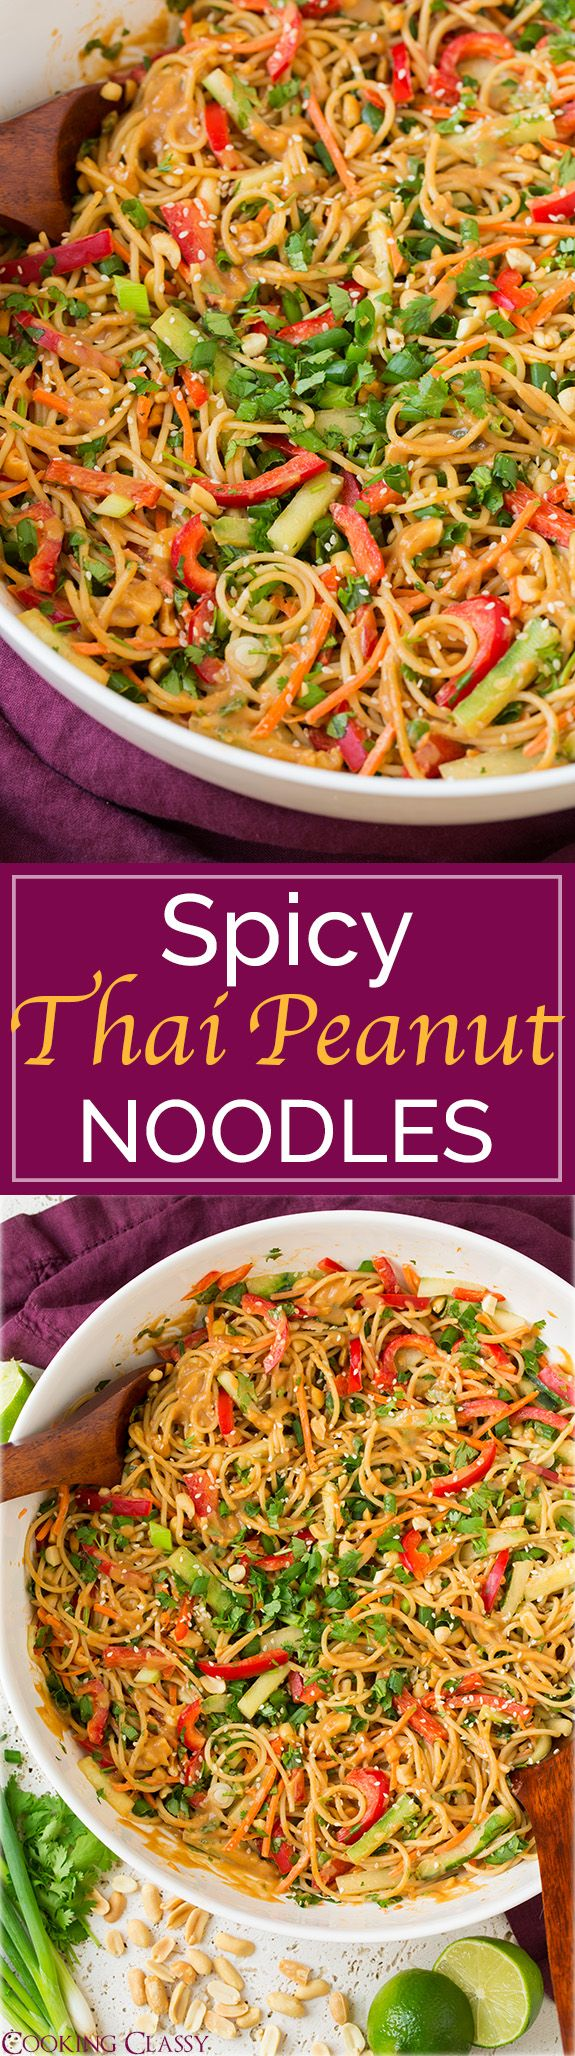 Spicy Thai Peanut Noodles – once you try these you will CRAVE them all the time! Easy to make and amazing